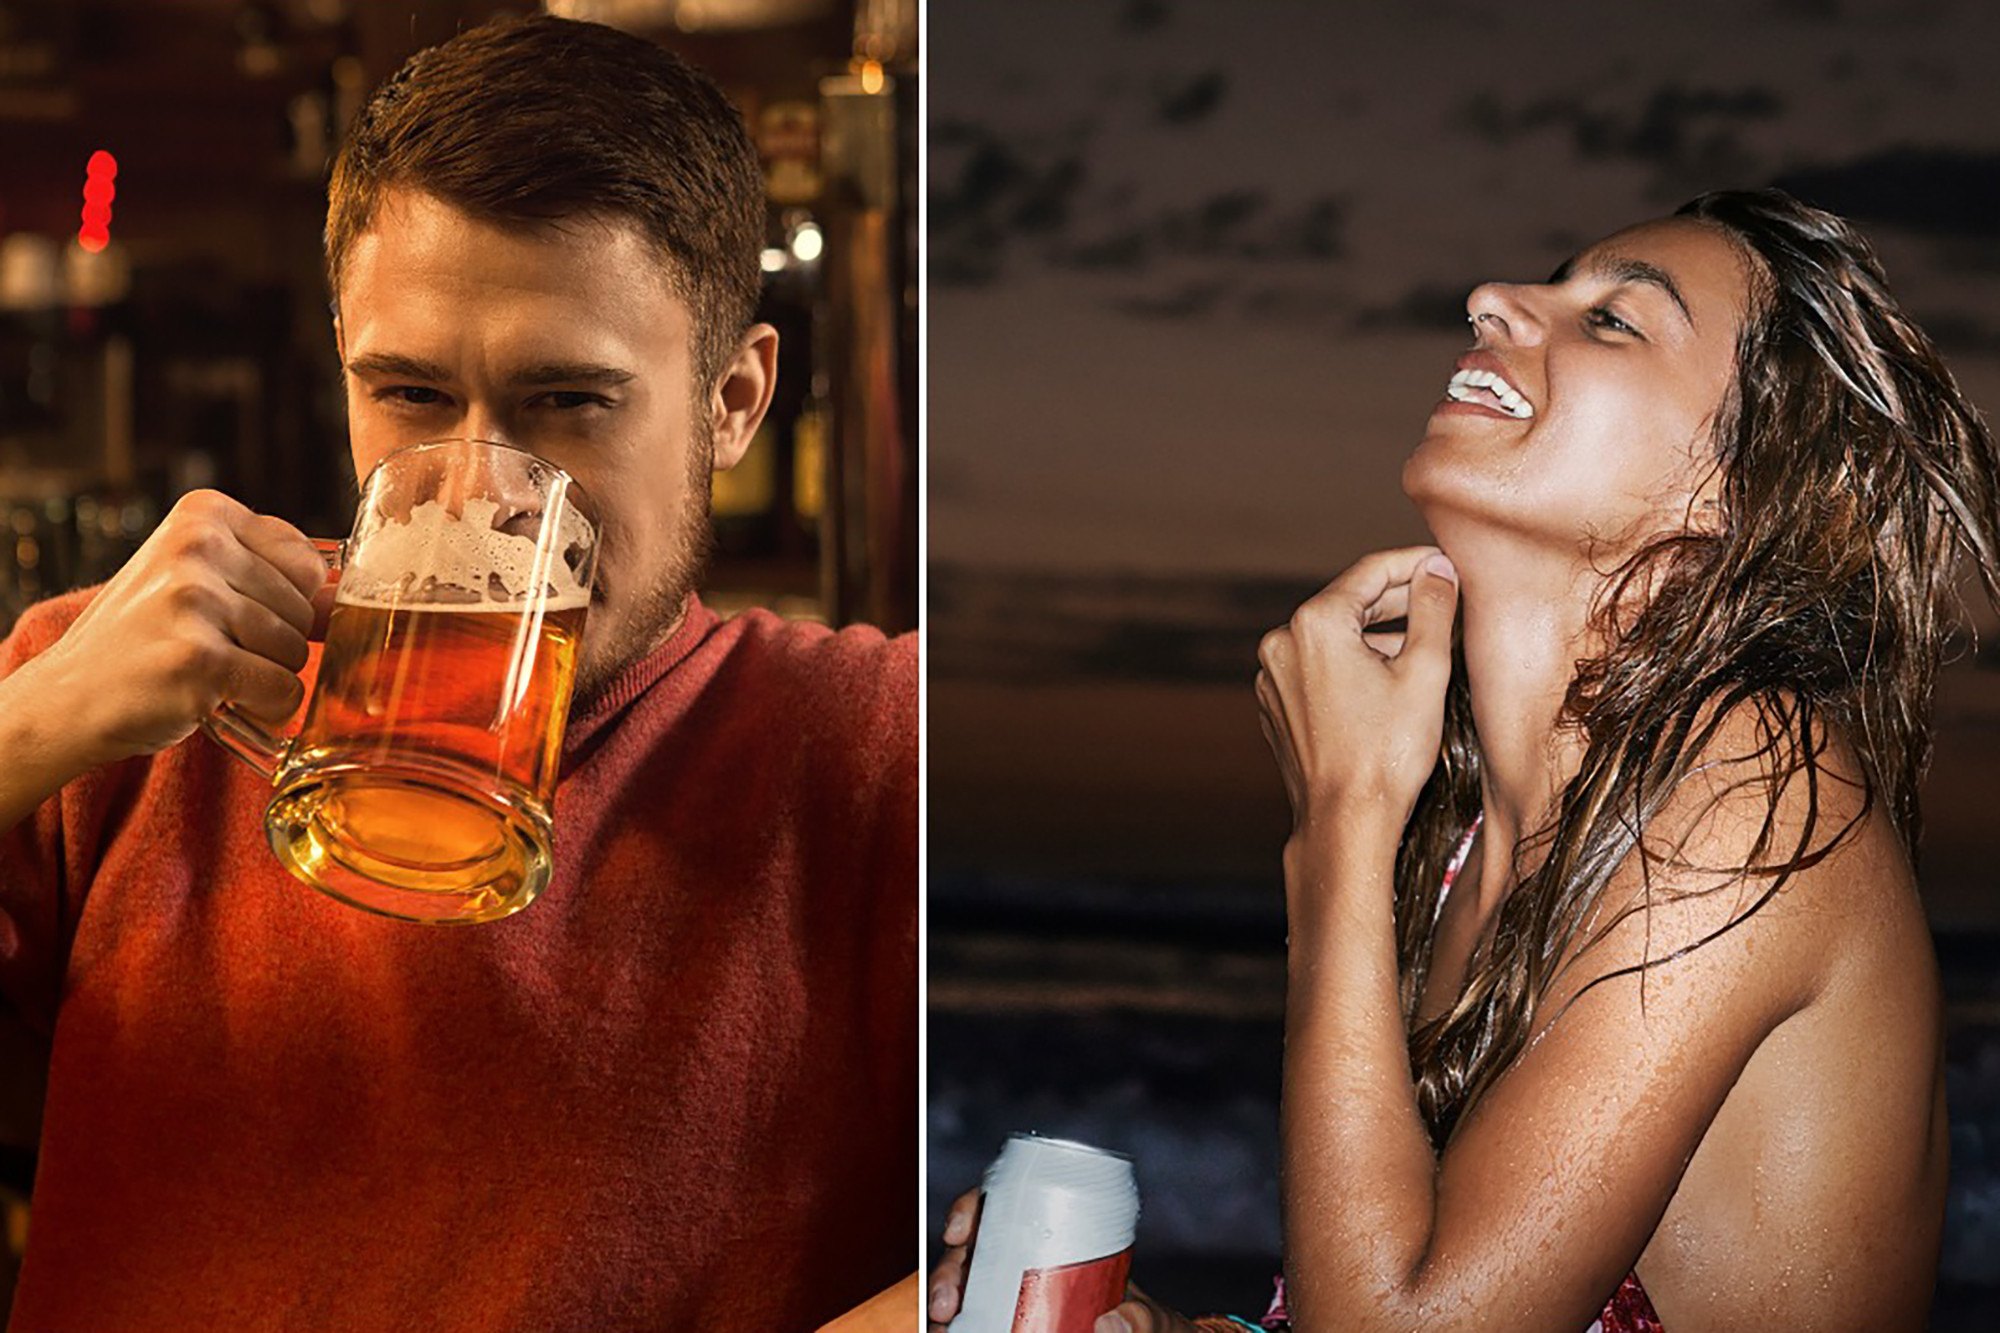 Why beer goggles make you look sexier TikTok doc